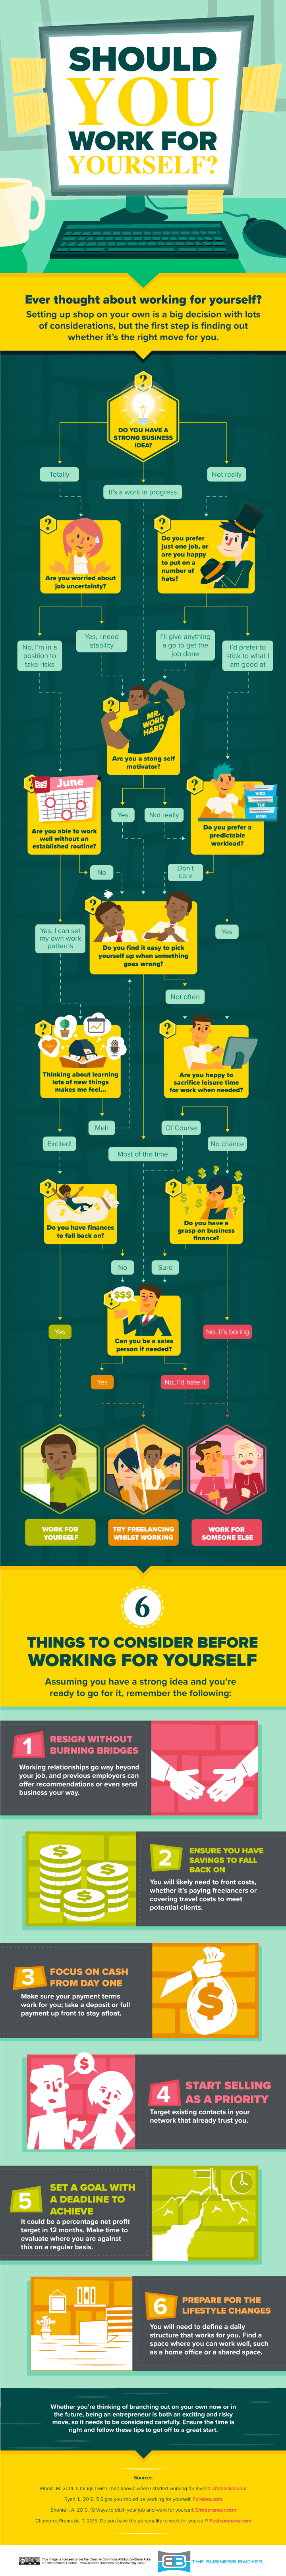 Should You Work For Yourself? Infographic